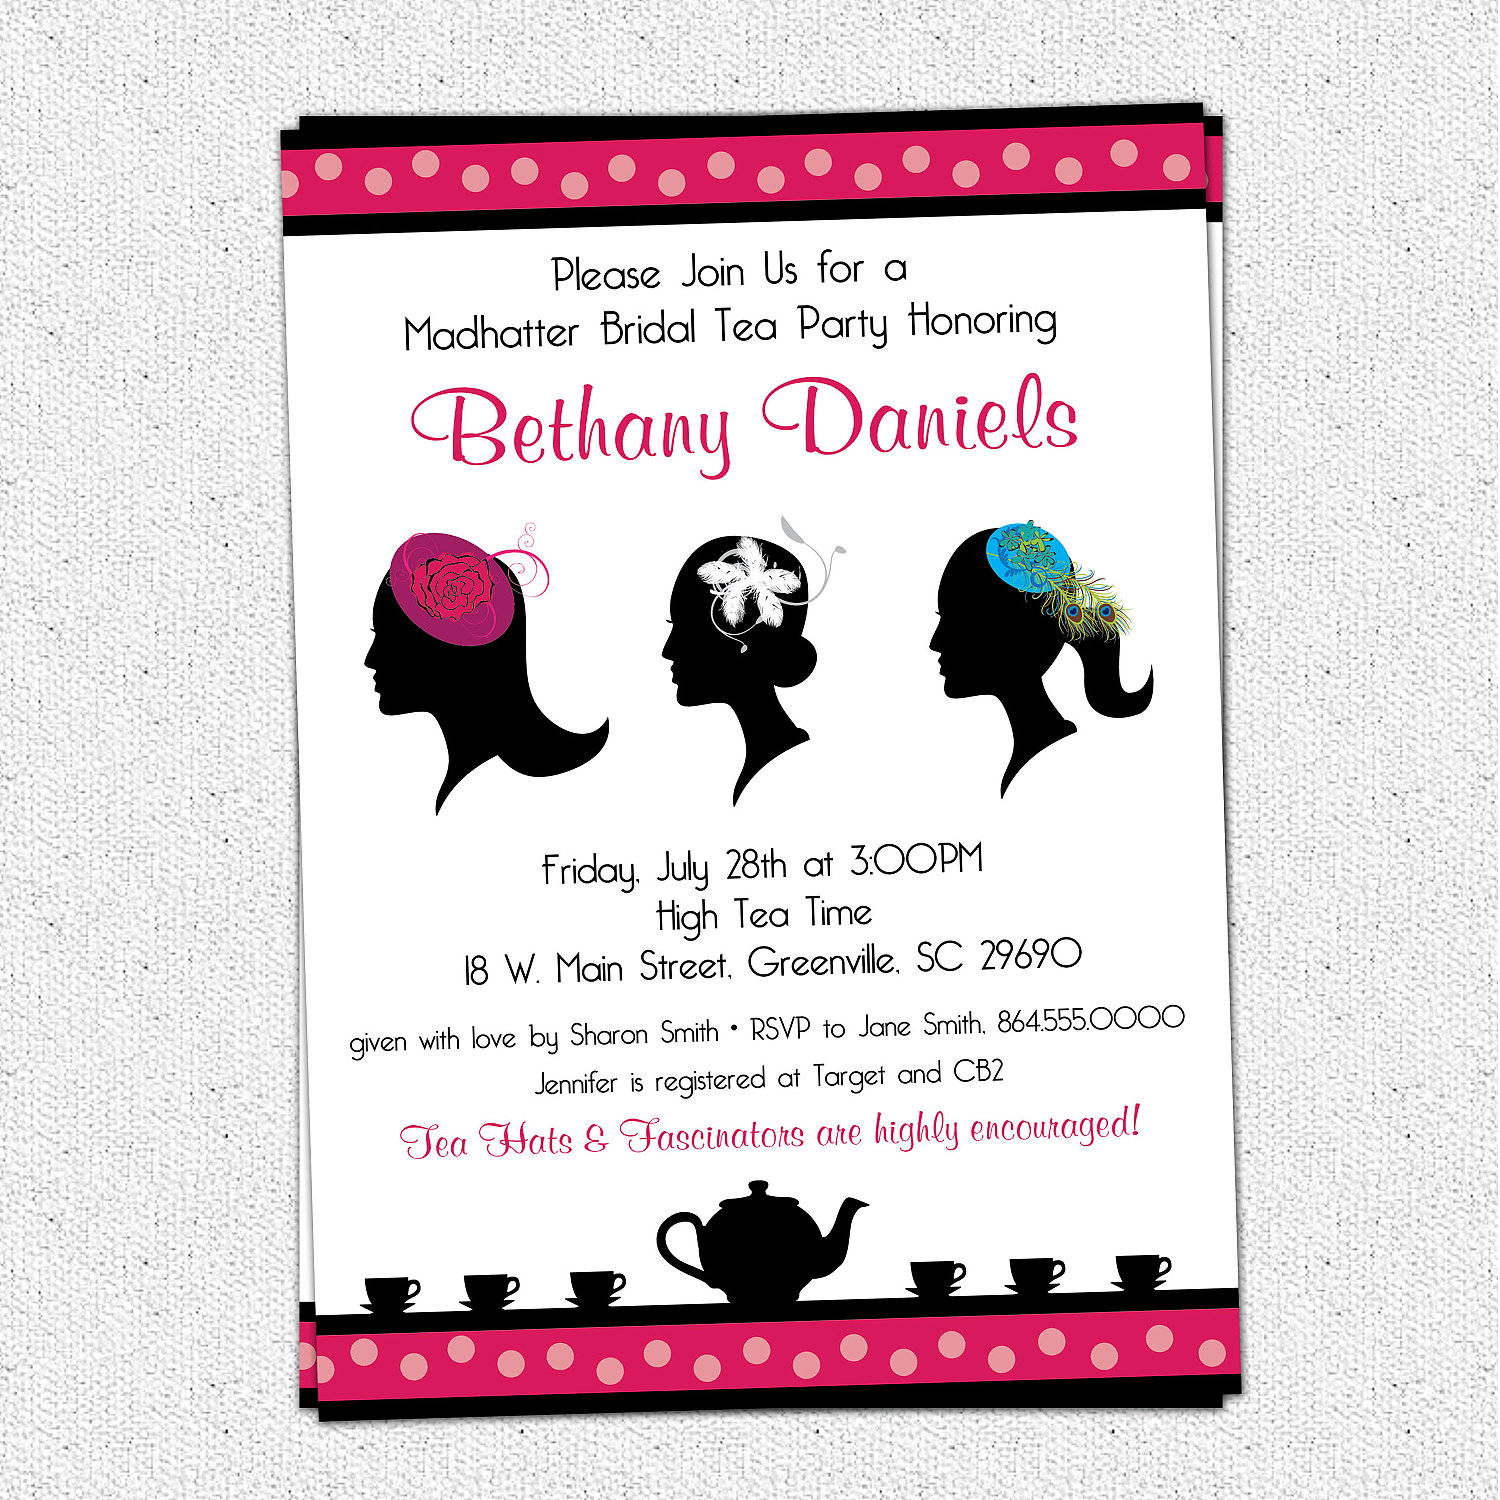 Madhatter mad hatter tea party invitations fascinator hats royalty madhatter mad hatter tea party invitations fascinator hats royalty bridal shower baby filmwisefo